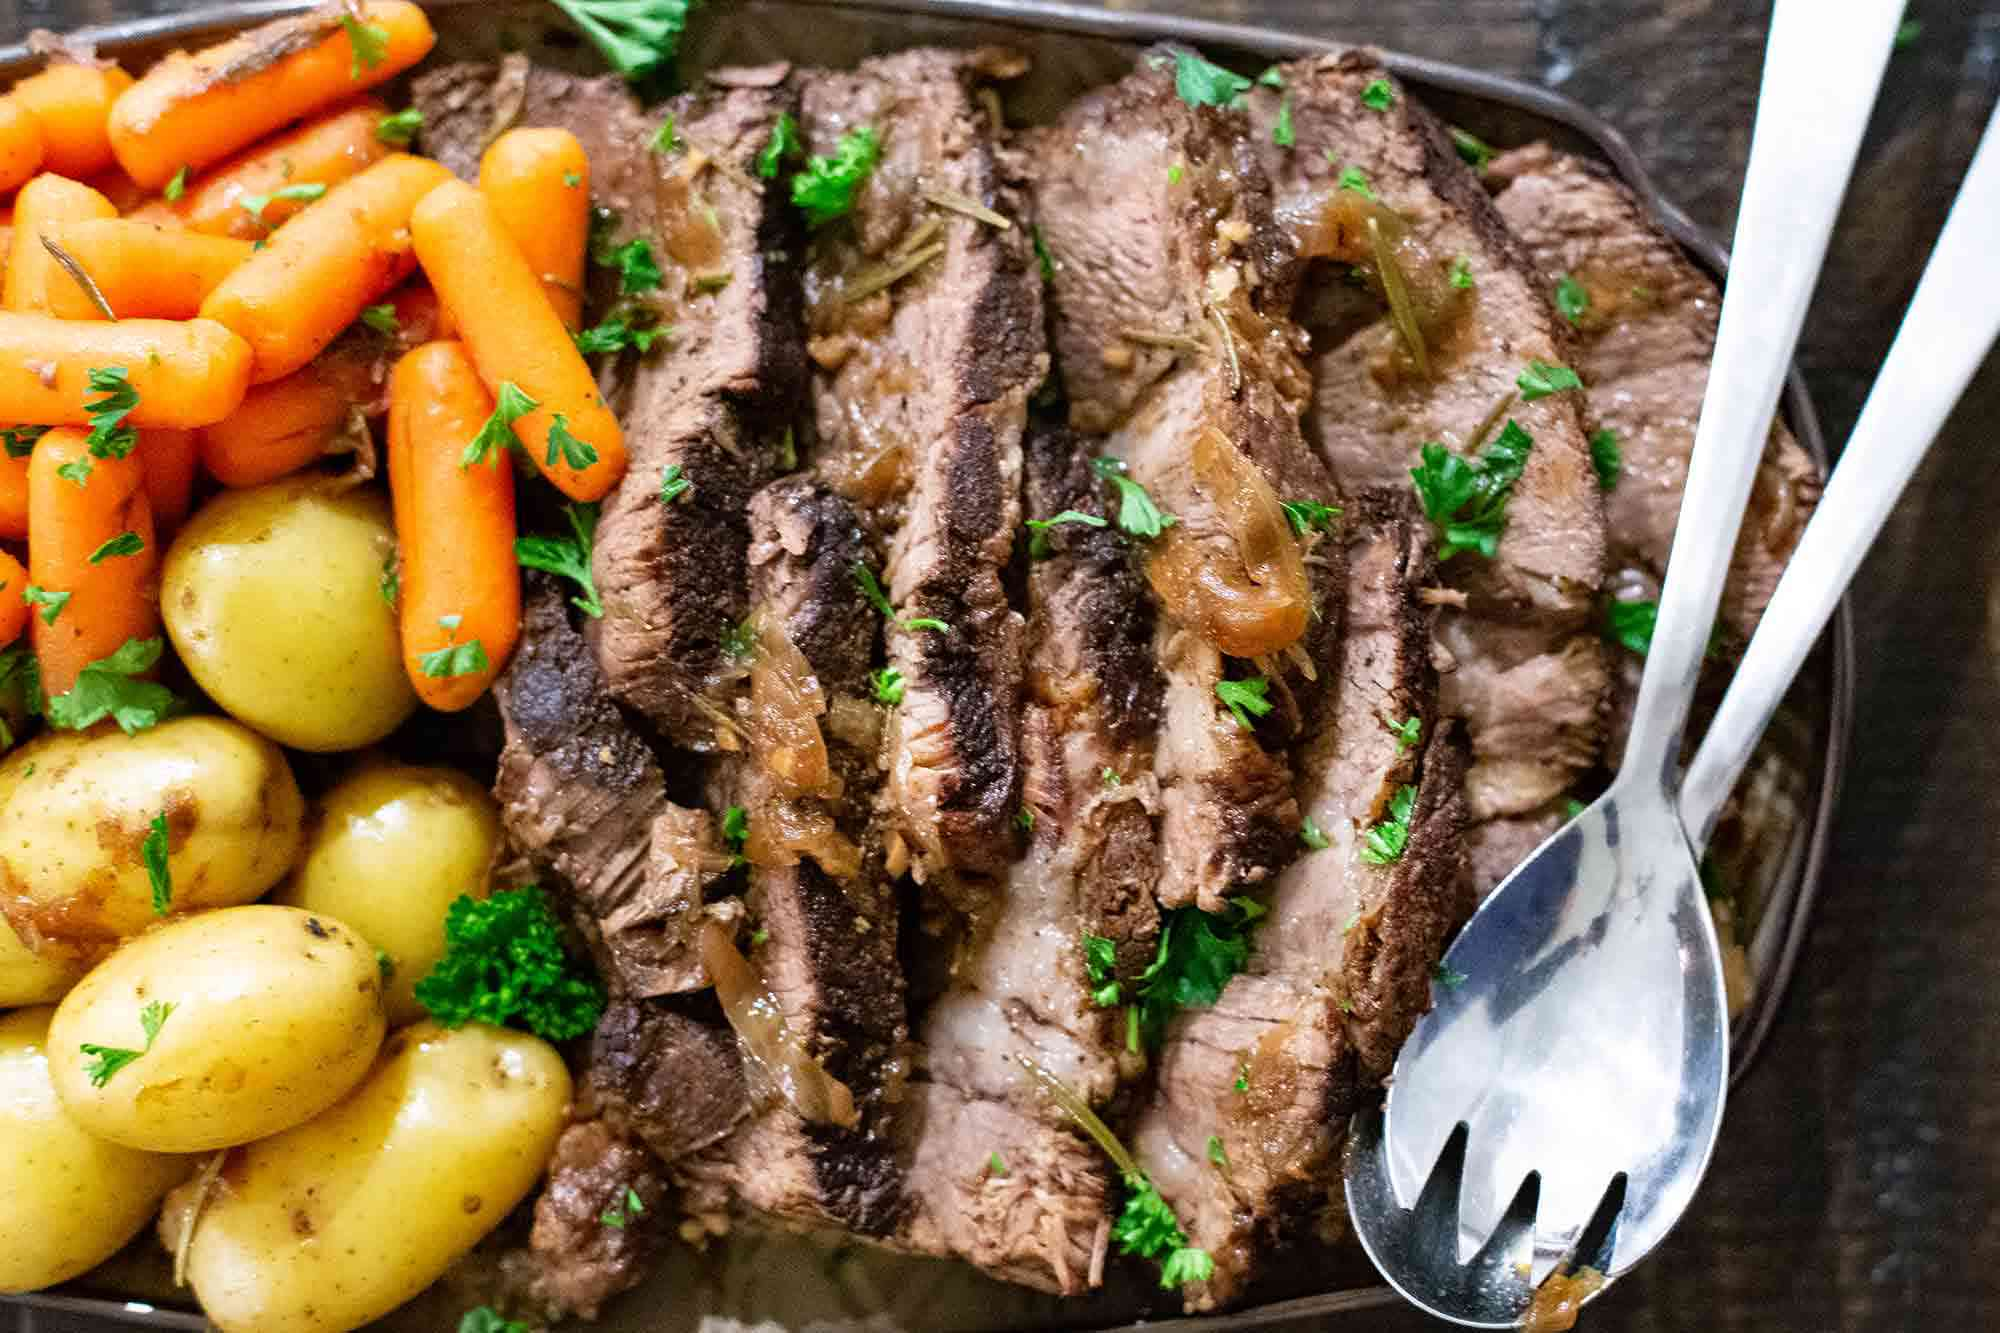 Instant Pot Pot Roast sliced and served on a platter with carrots and potatoes